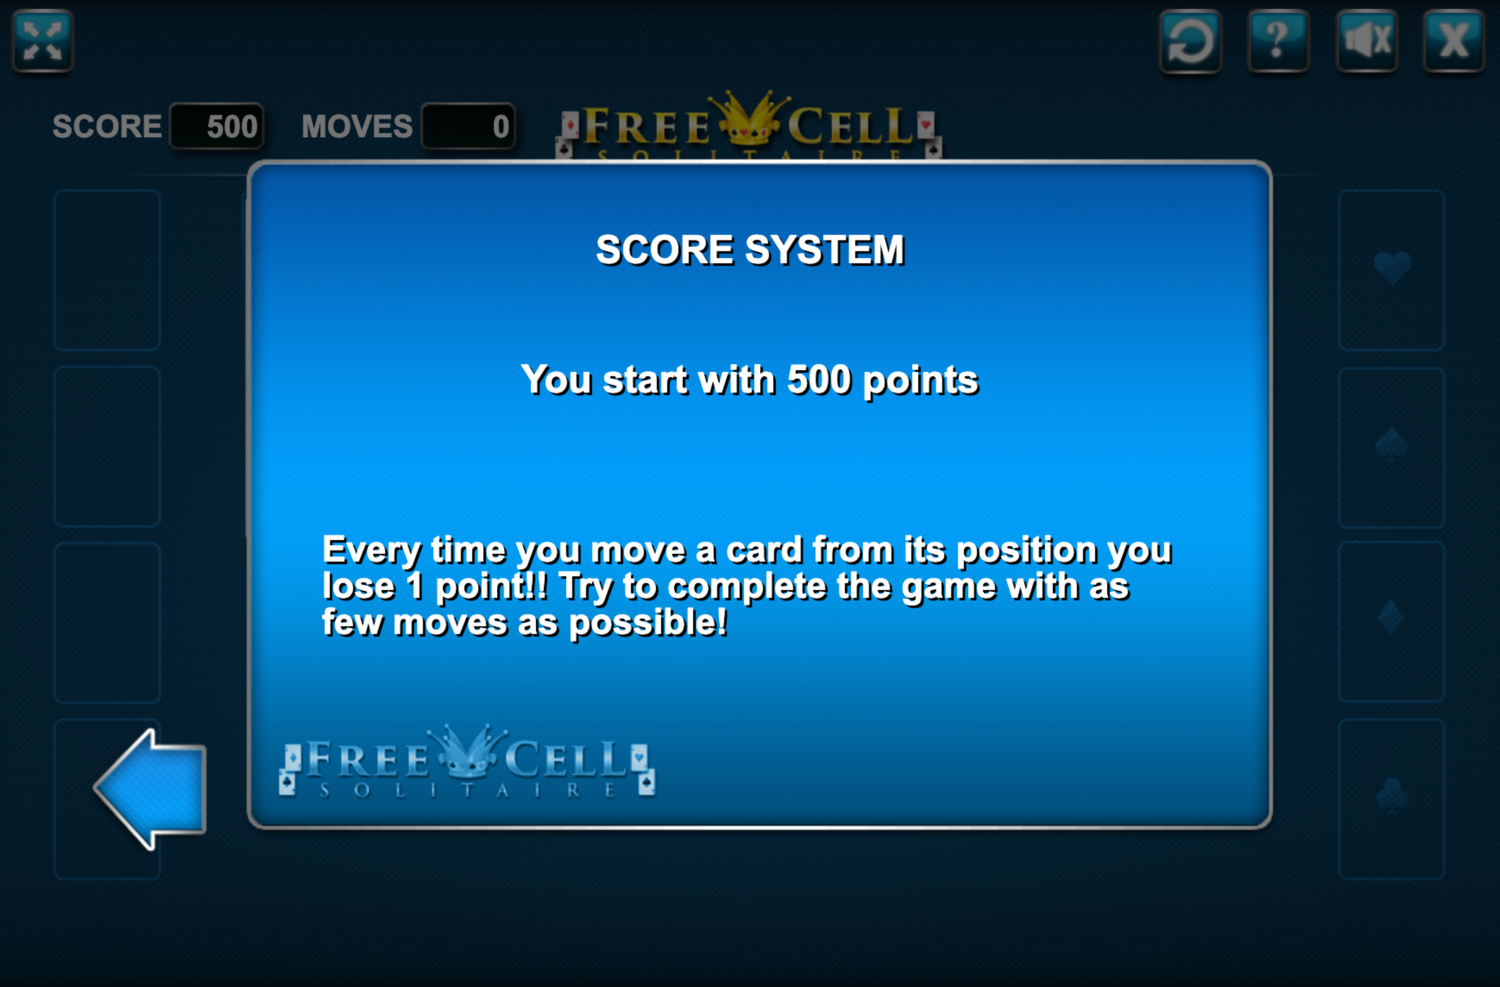 Freecell Solitaire Points Screen Screenshot.